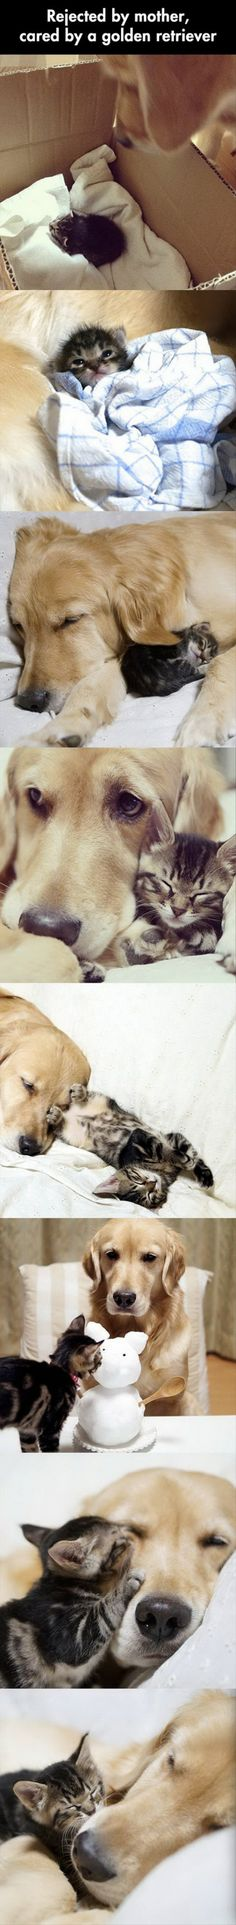 Rejected by mother, cared by a golden retriever